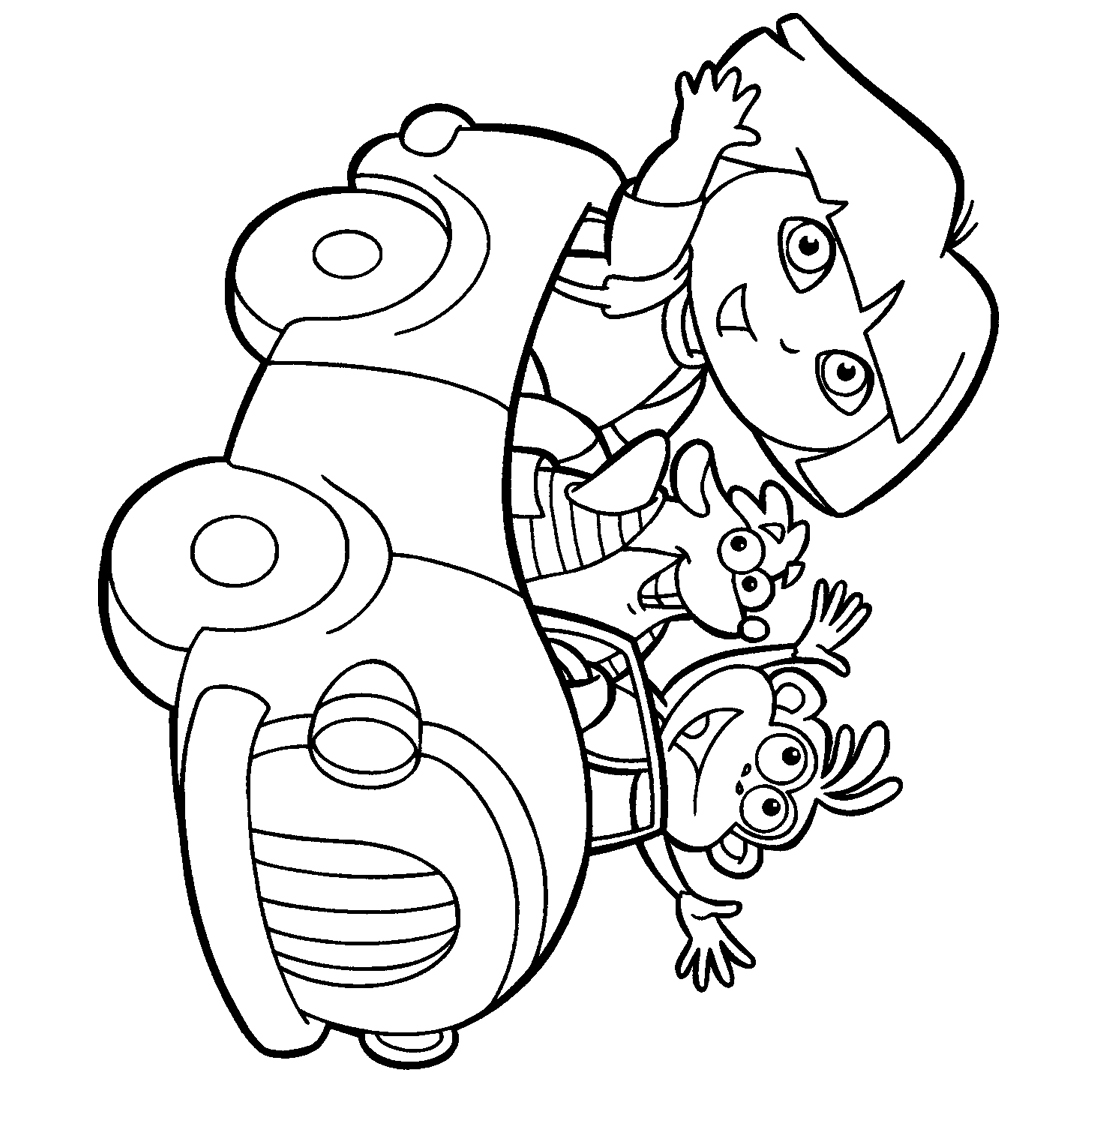 Printable coloring pages for kids | Coloring Pages For Kids | free coloring pages  format for toddlers